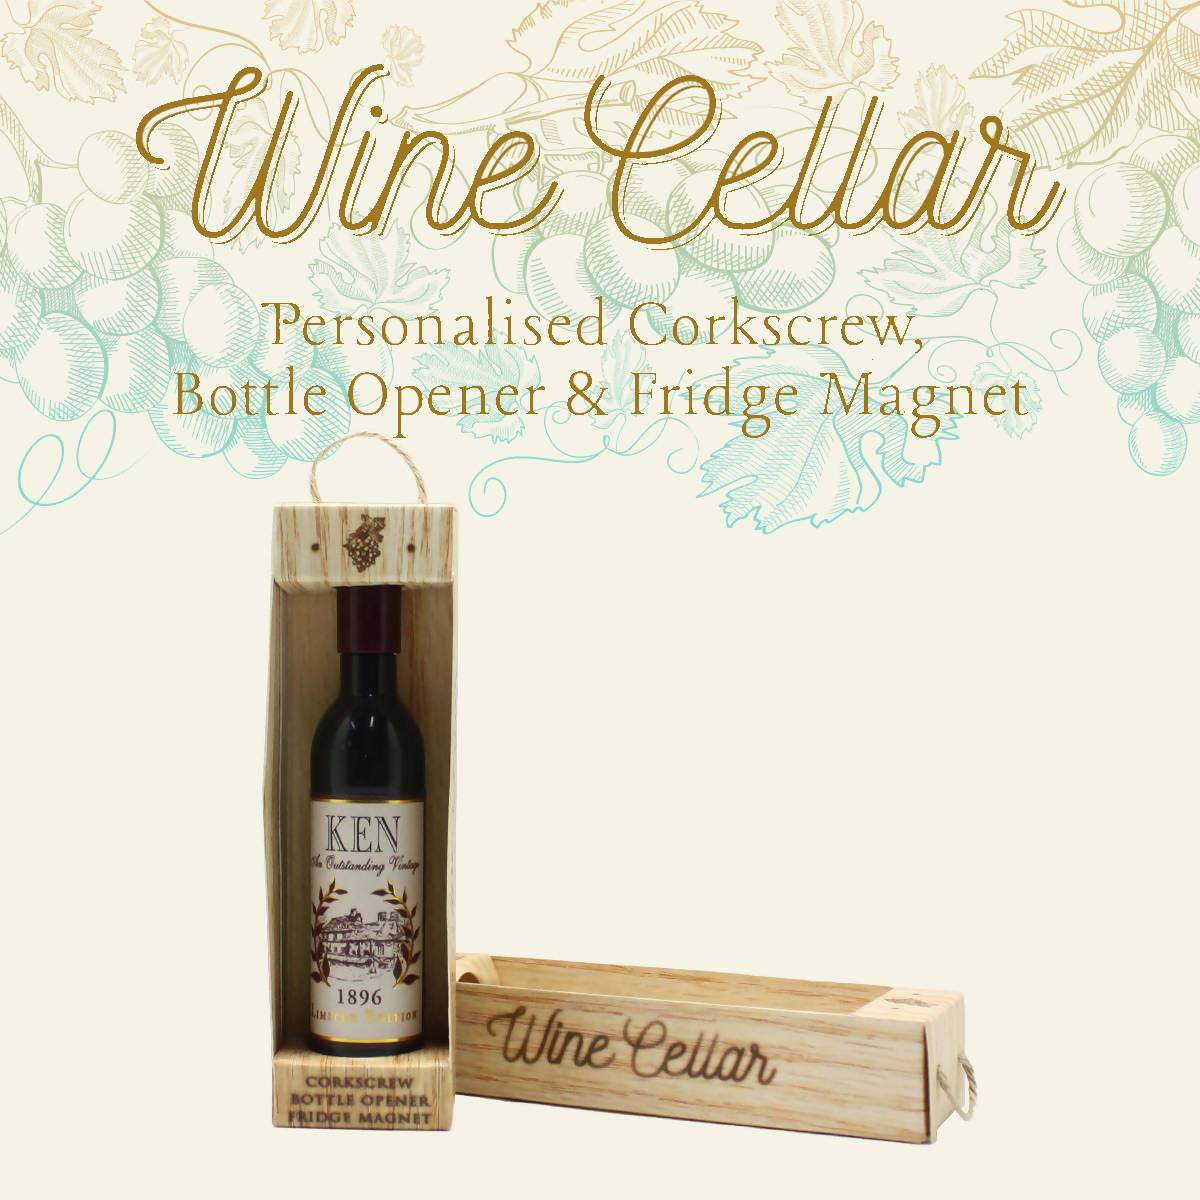 WINE CELLAR - For Wine Lover : Ken - Bottle Openers - La Belle Collection - Naiise